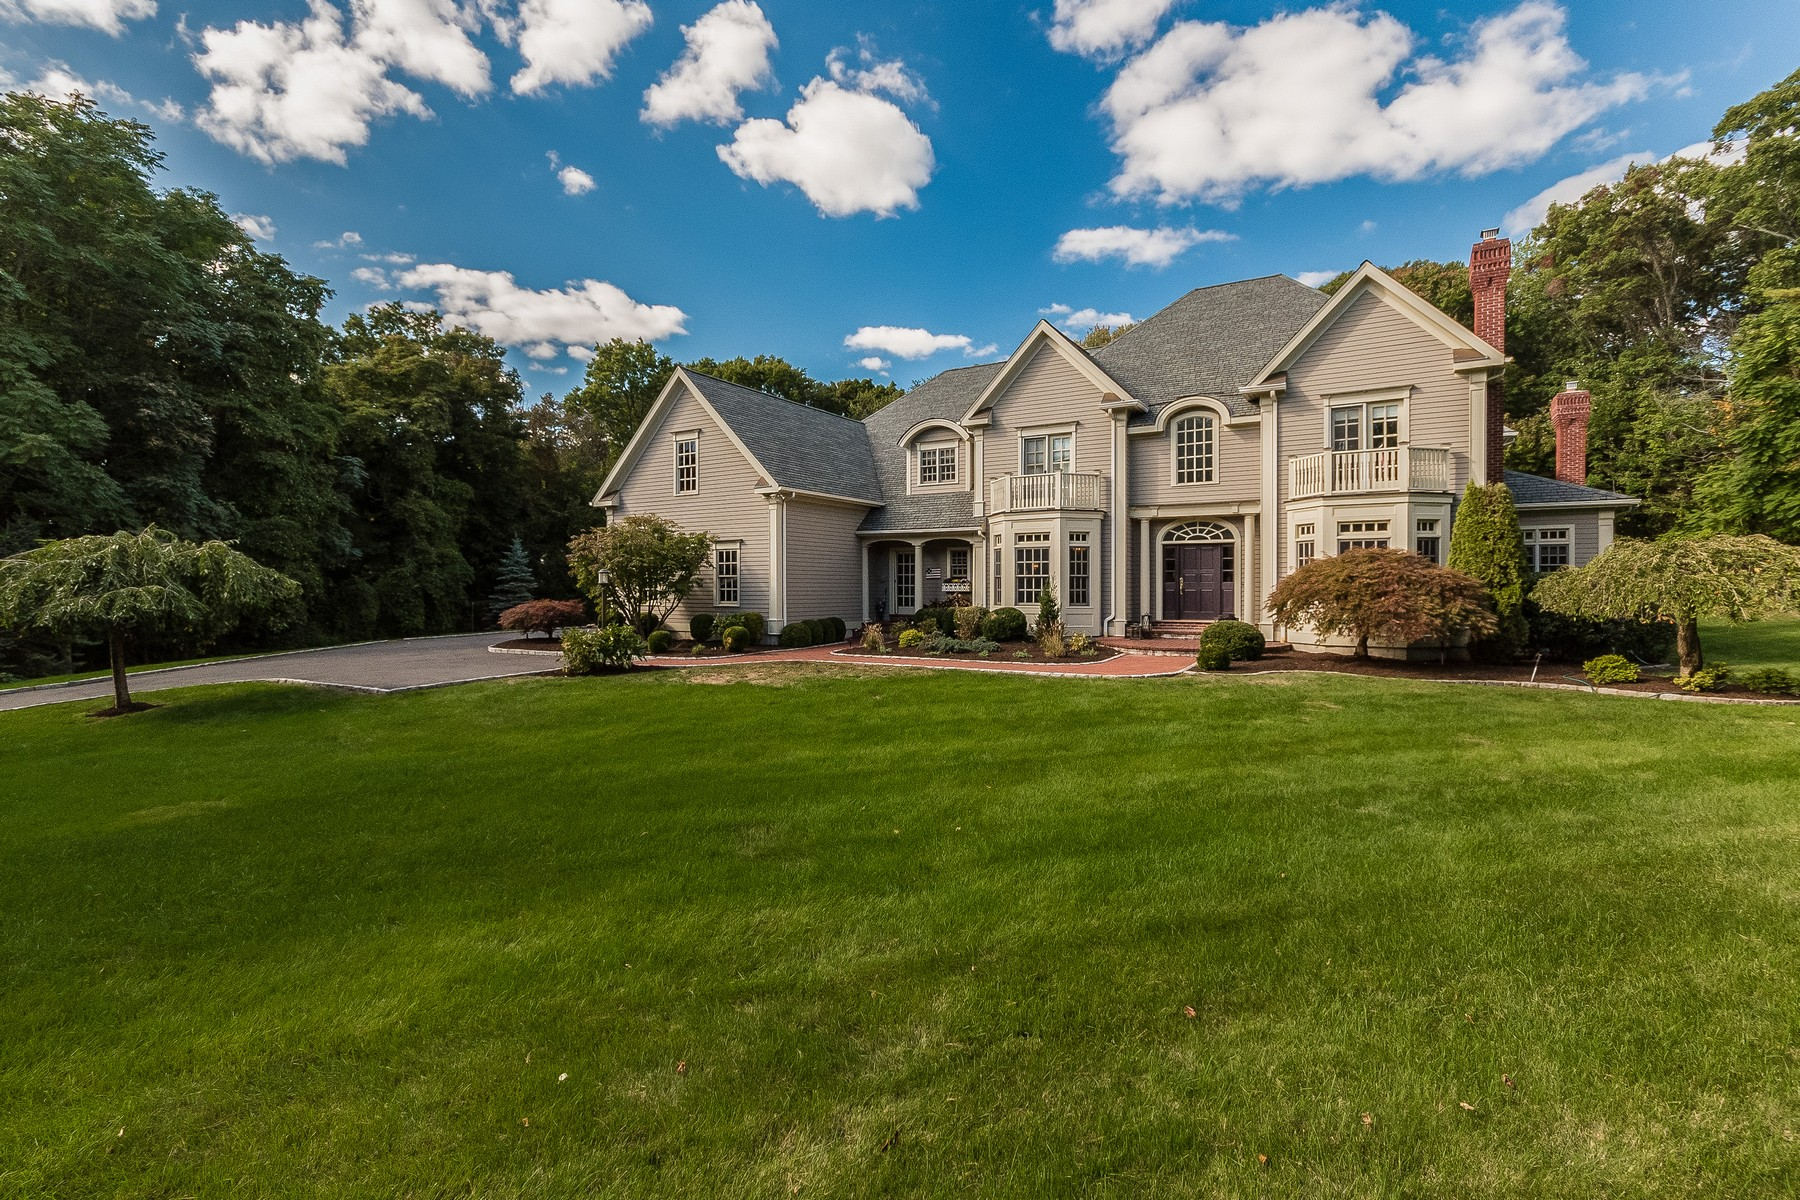 Single Family Home for Sale at WINTON PARK 250 Winton Road Fairfield, Connecticut, 06824 United States